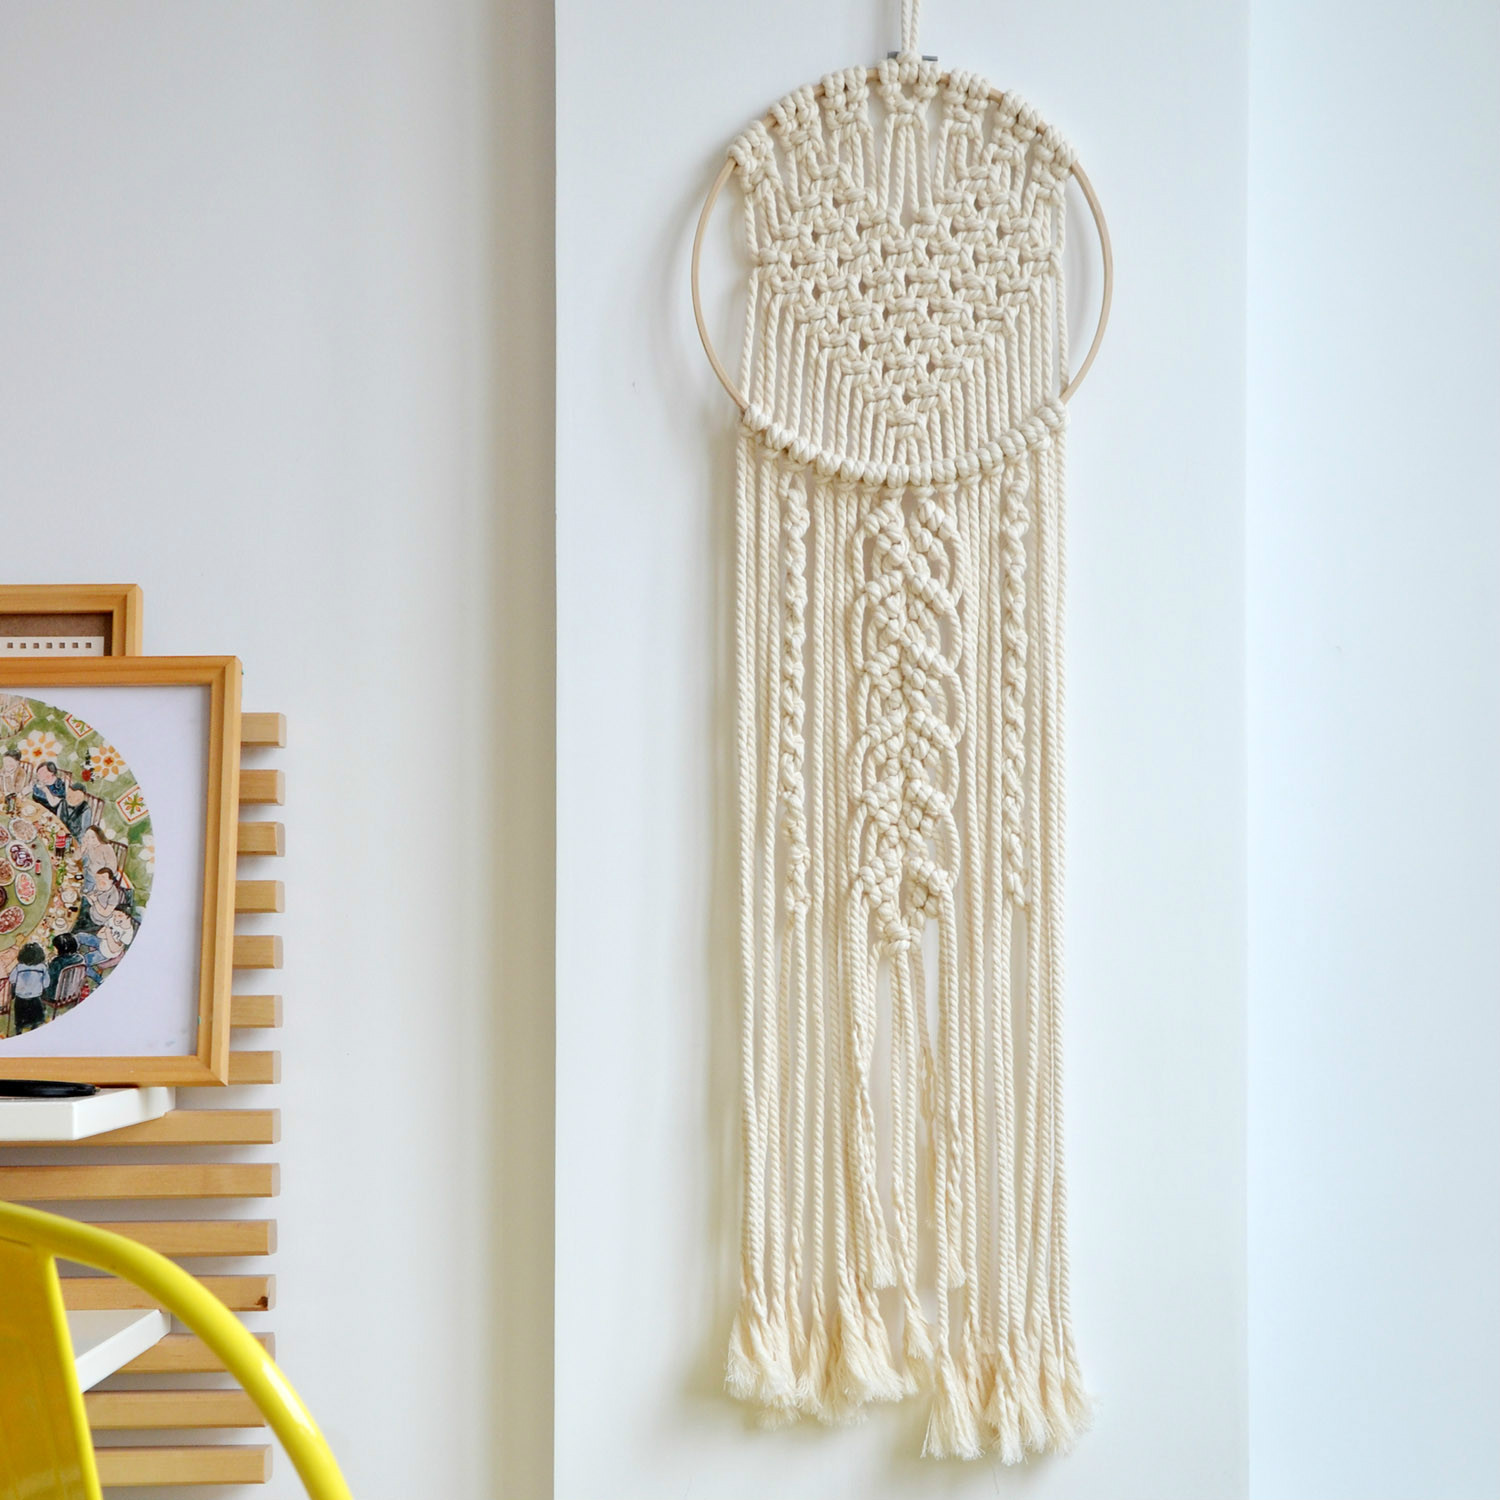 Handmade Wall Decor Macrame Wall Hanging Decoration Wall Art Handmade Tapestry